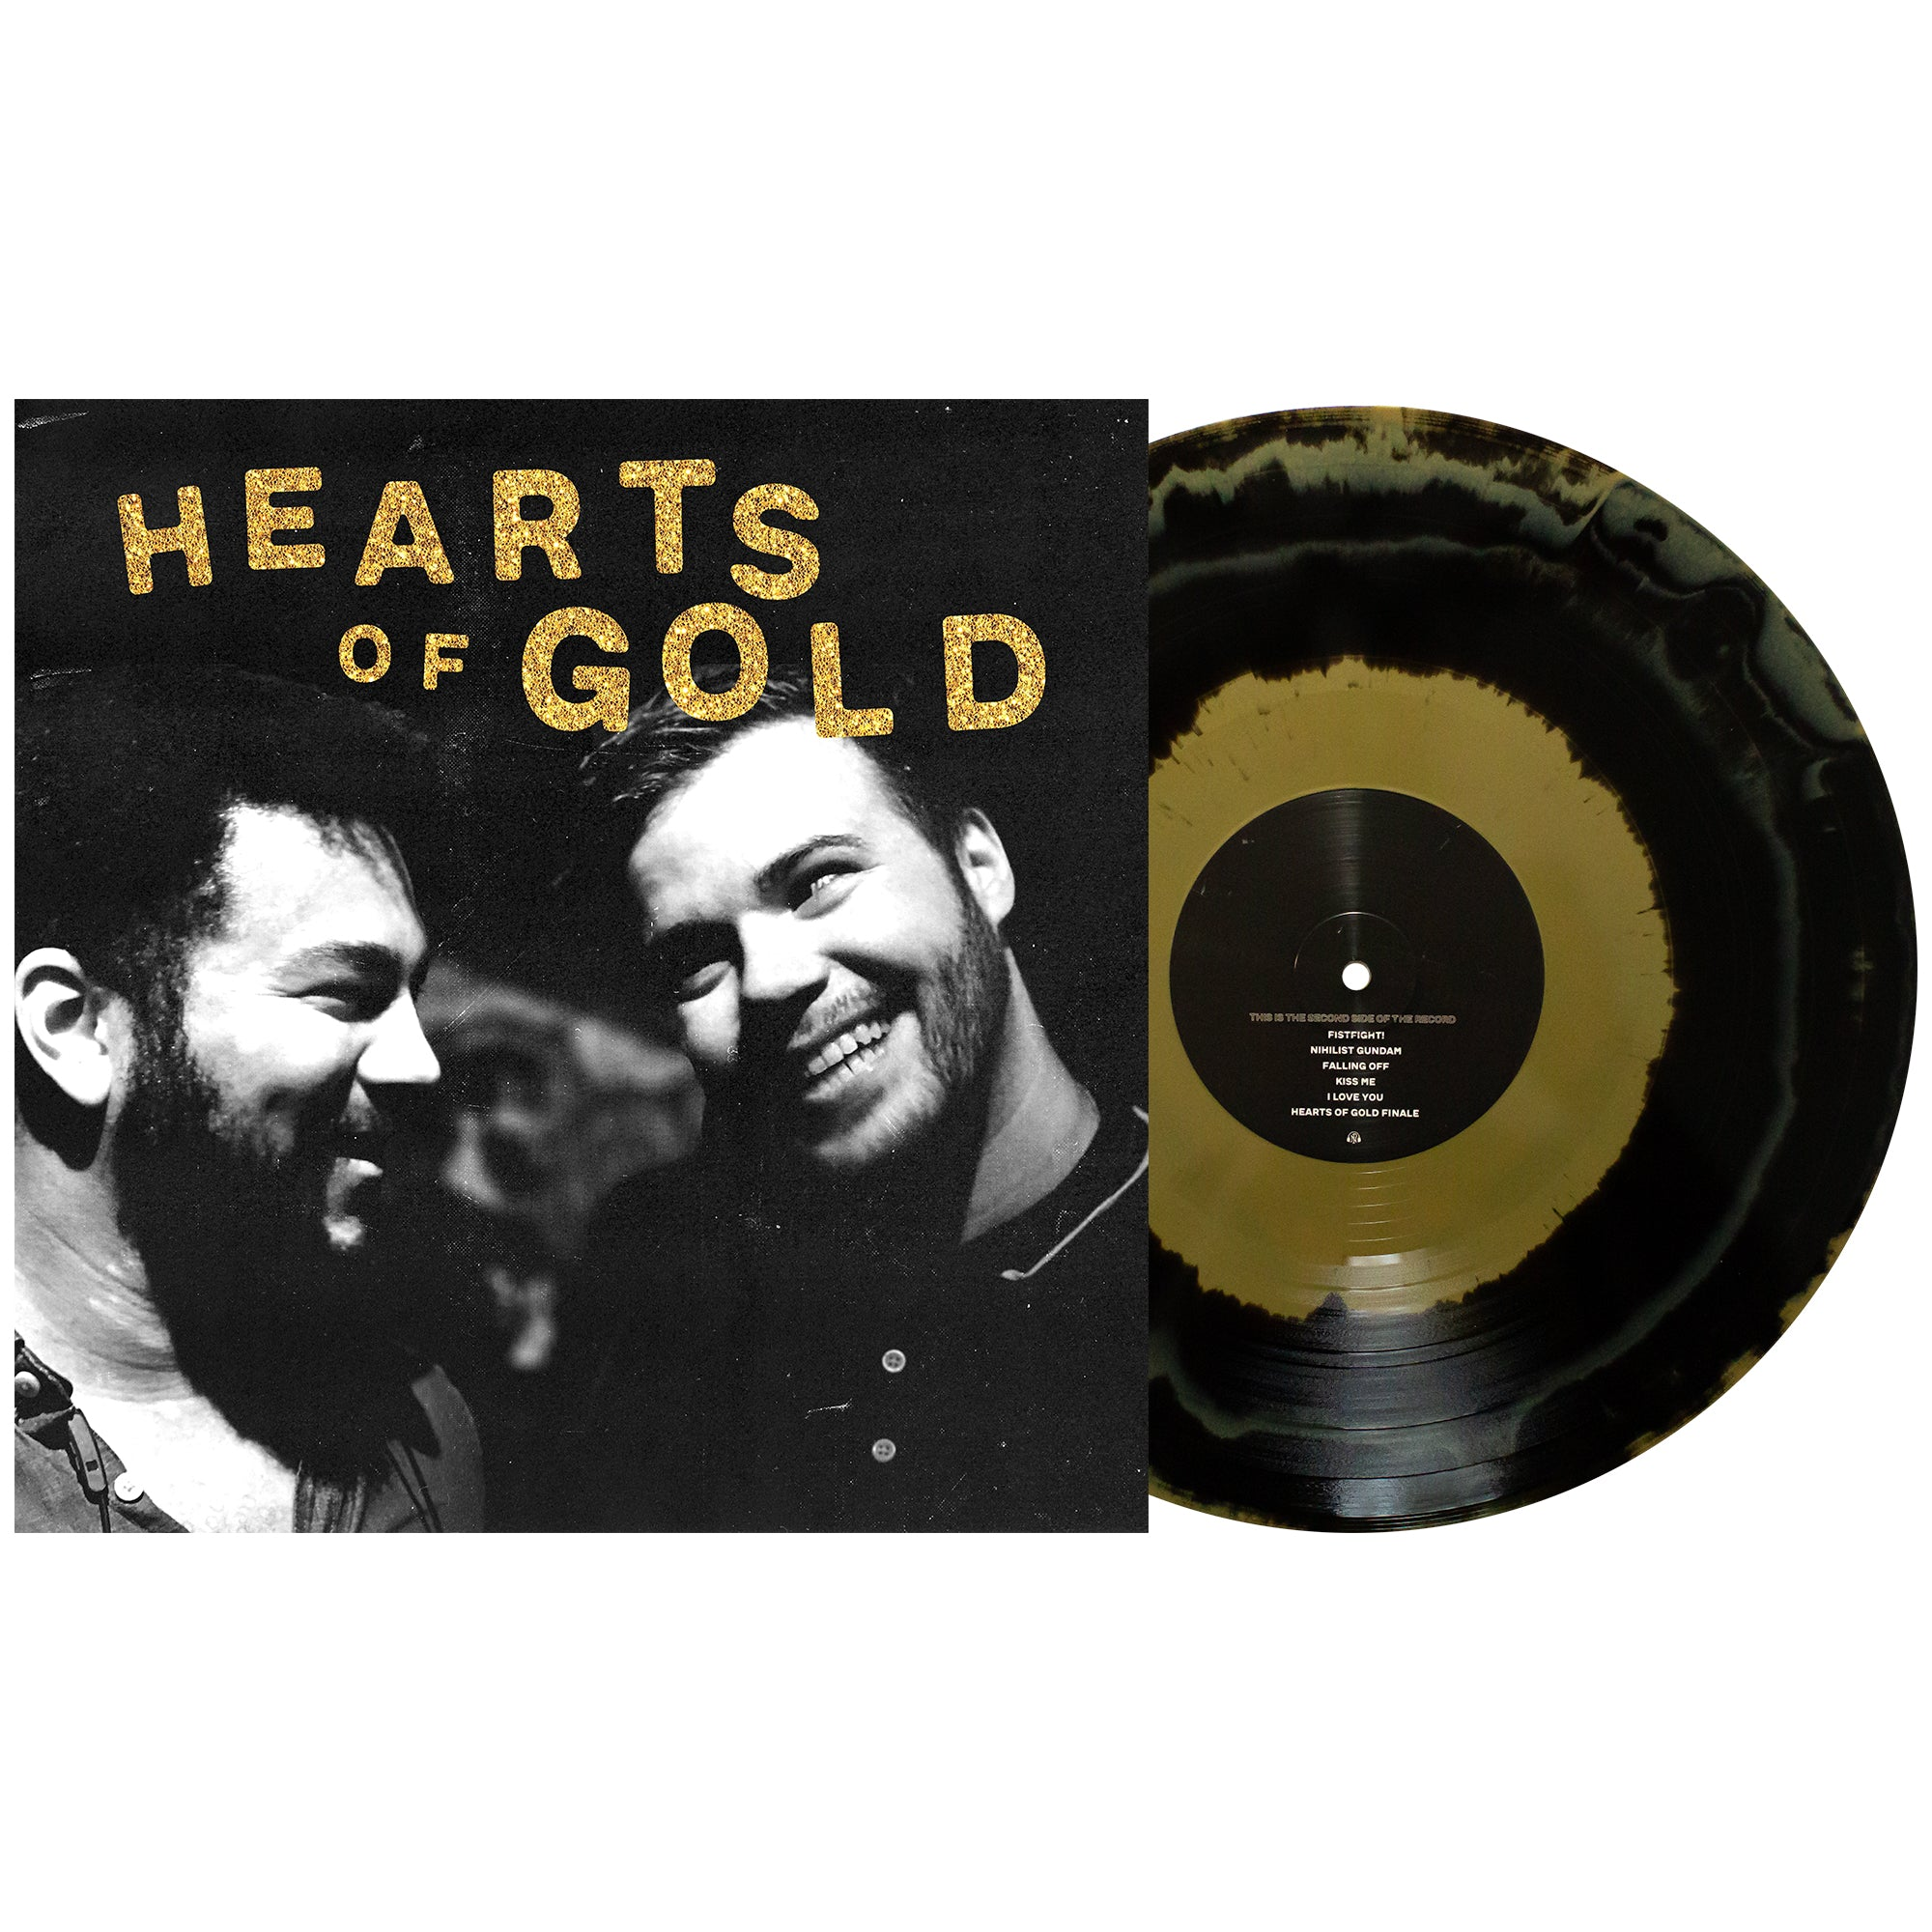 Dollar Signs 'Hearts of Gold' Various 1 – Black & Gold aside/bside